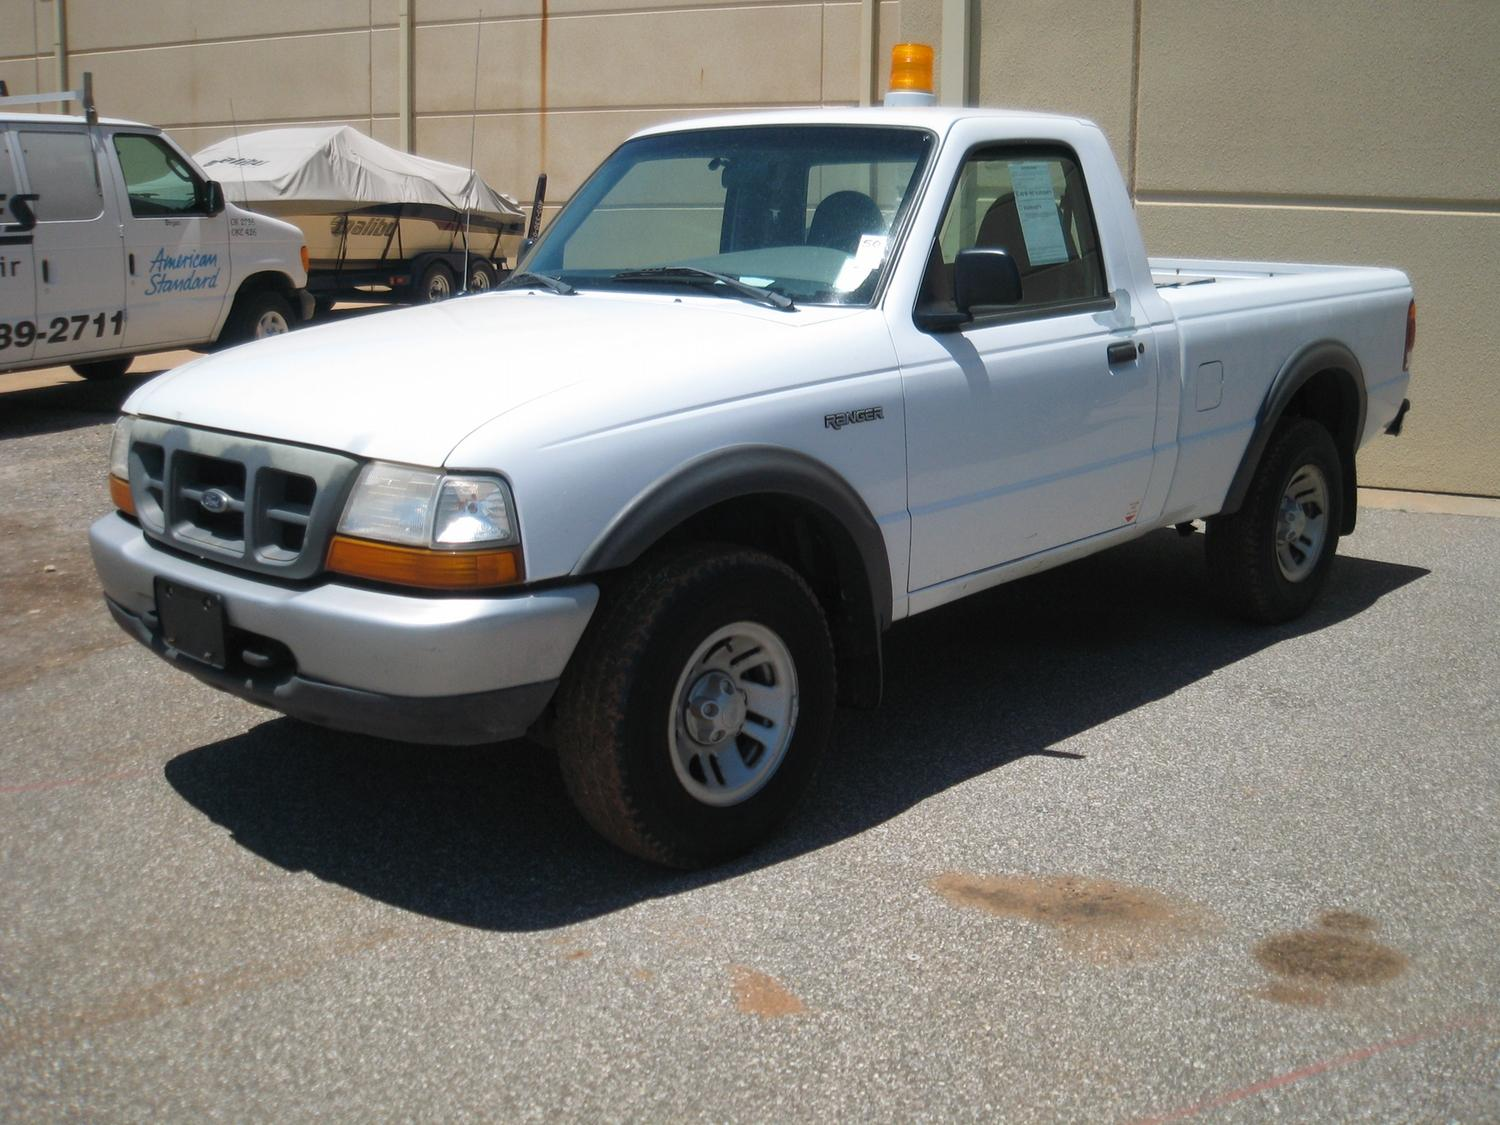 Image 1 1998 ford ranger 4x4 reg cab cng truck